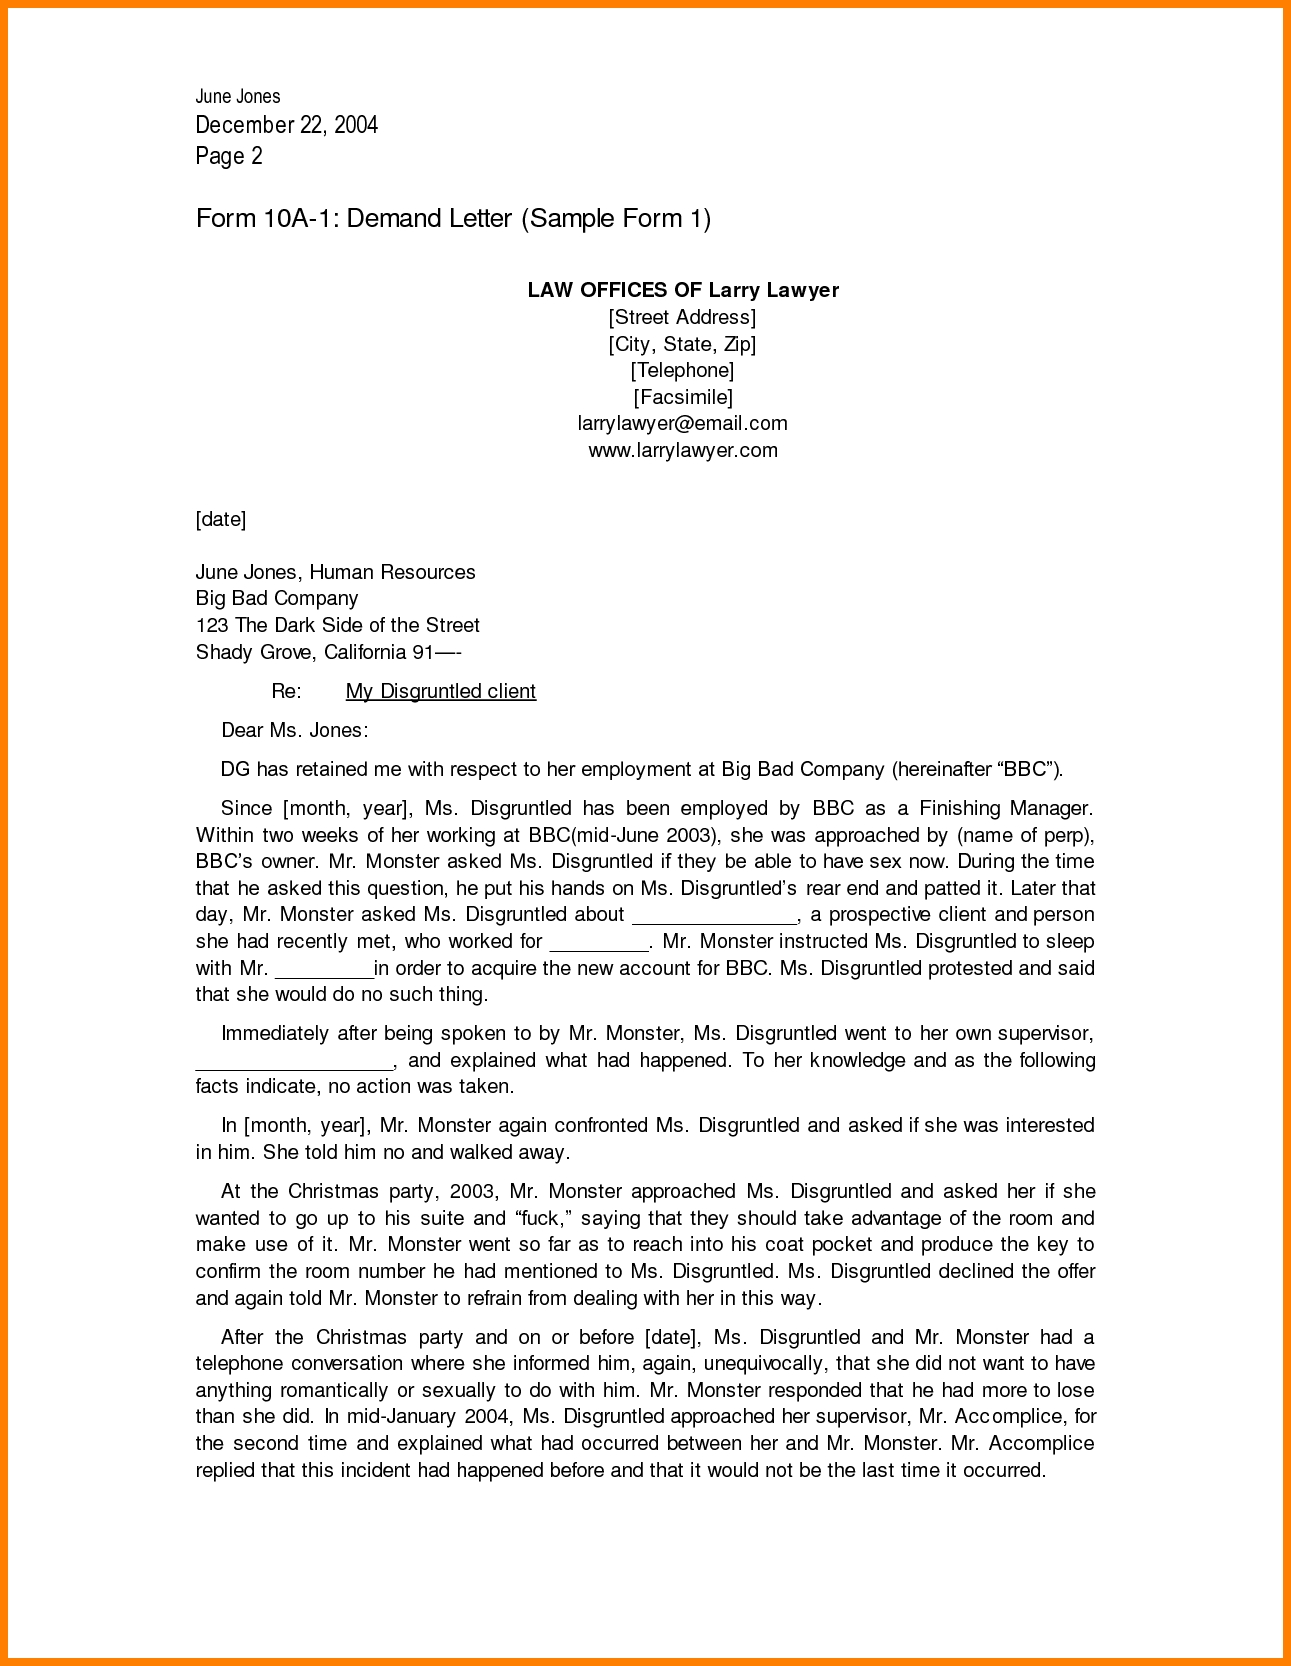 letter seals email format examples and forms 23136 | 7 legal demand letter format ledger paper with legal email format